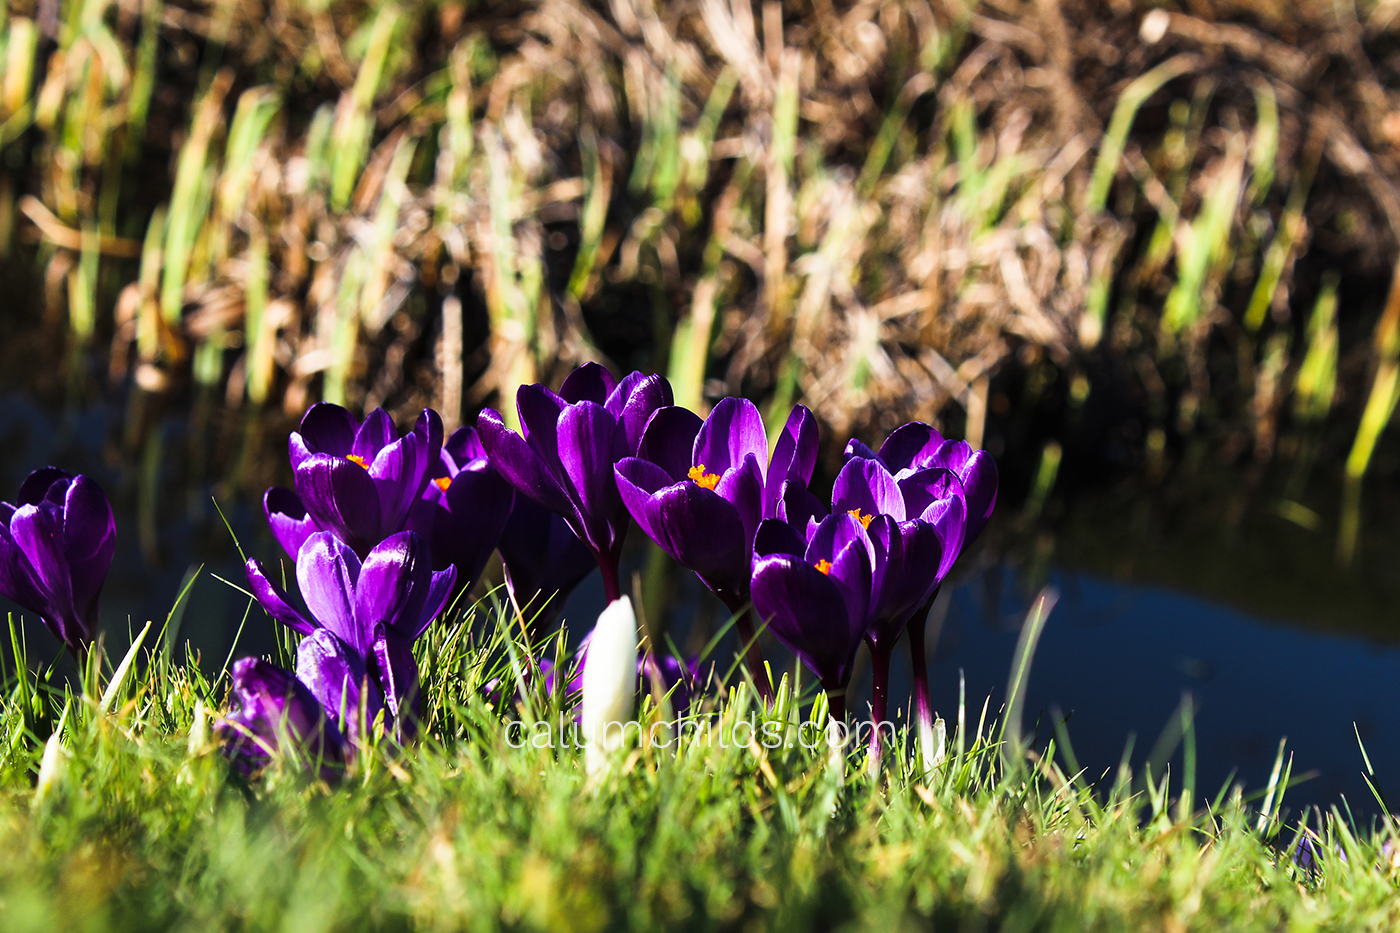 A group of purple crocuses grow on the riverbank.